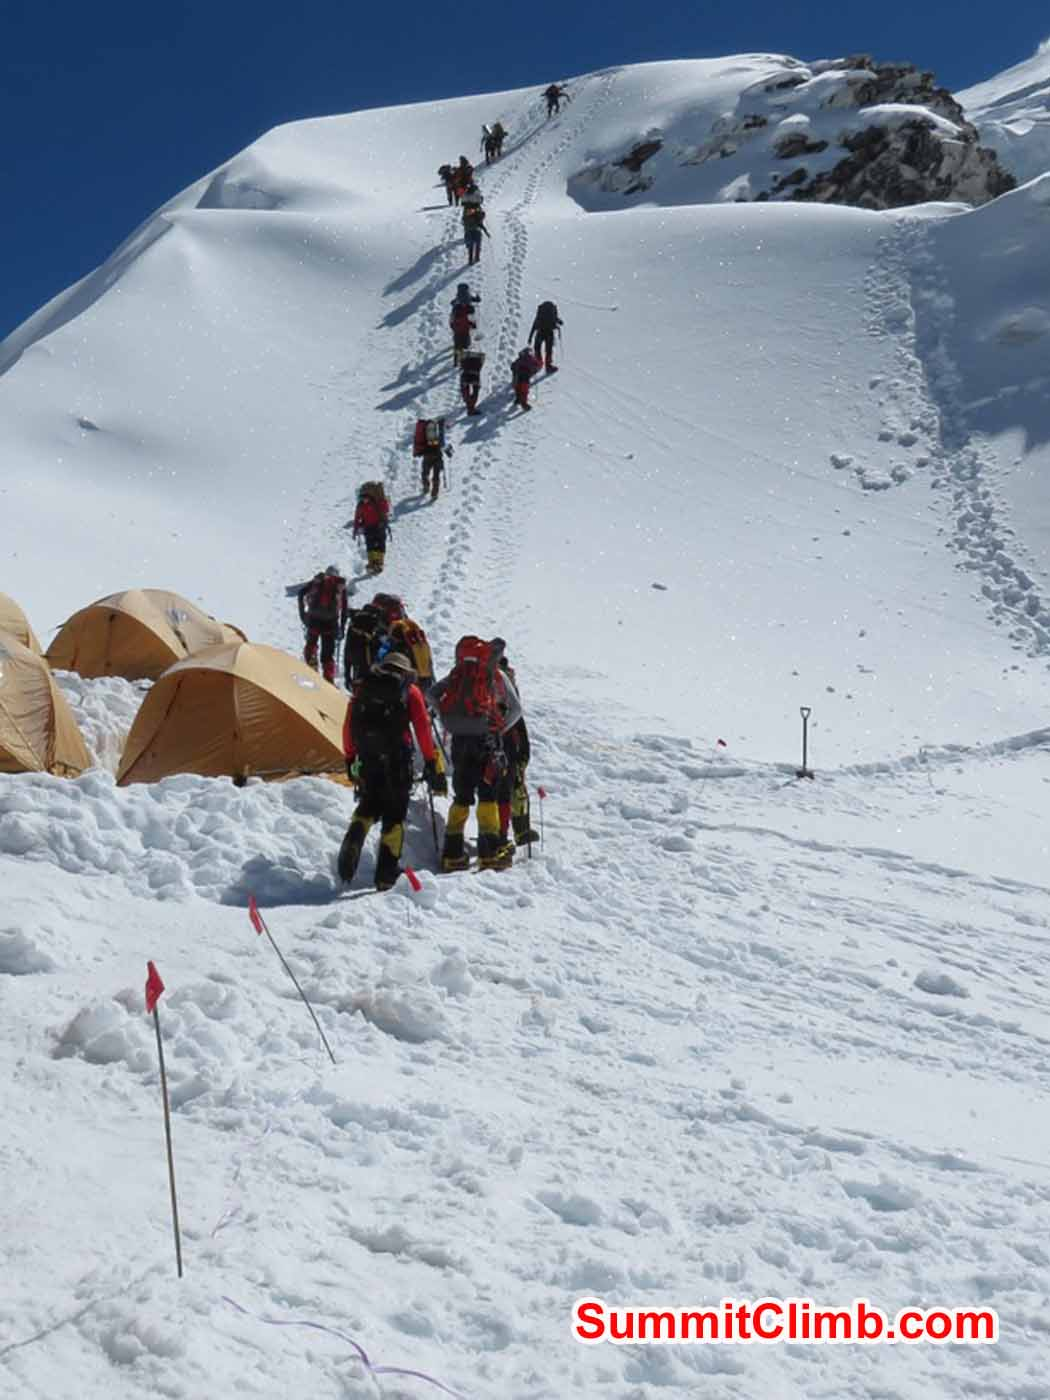 Expedition members getting ready to climb to Camp 1.5 by Kaley Erickson